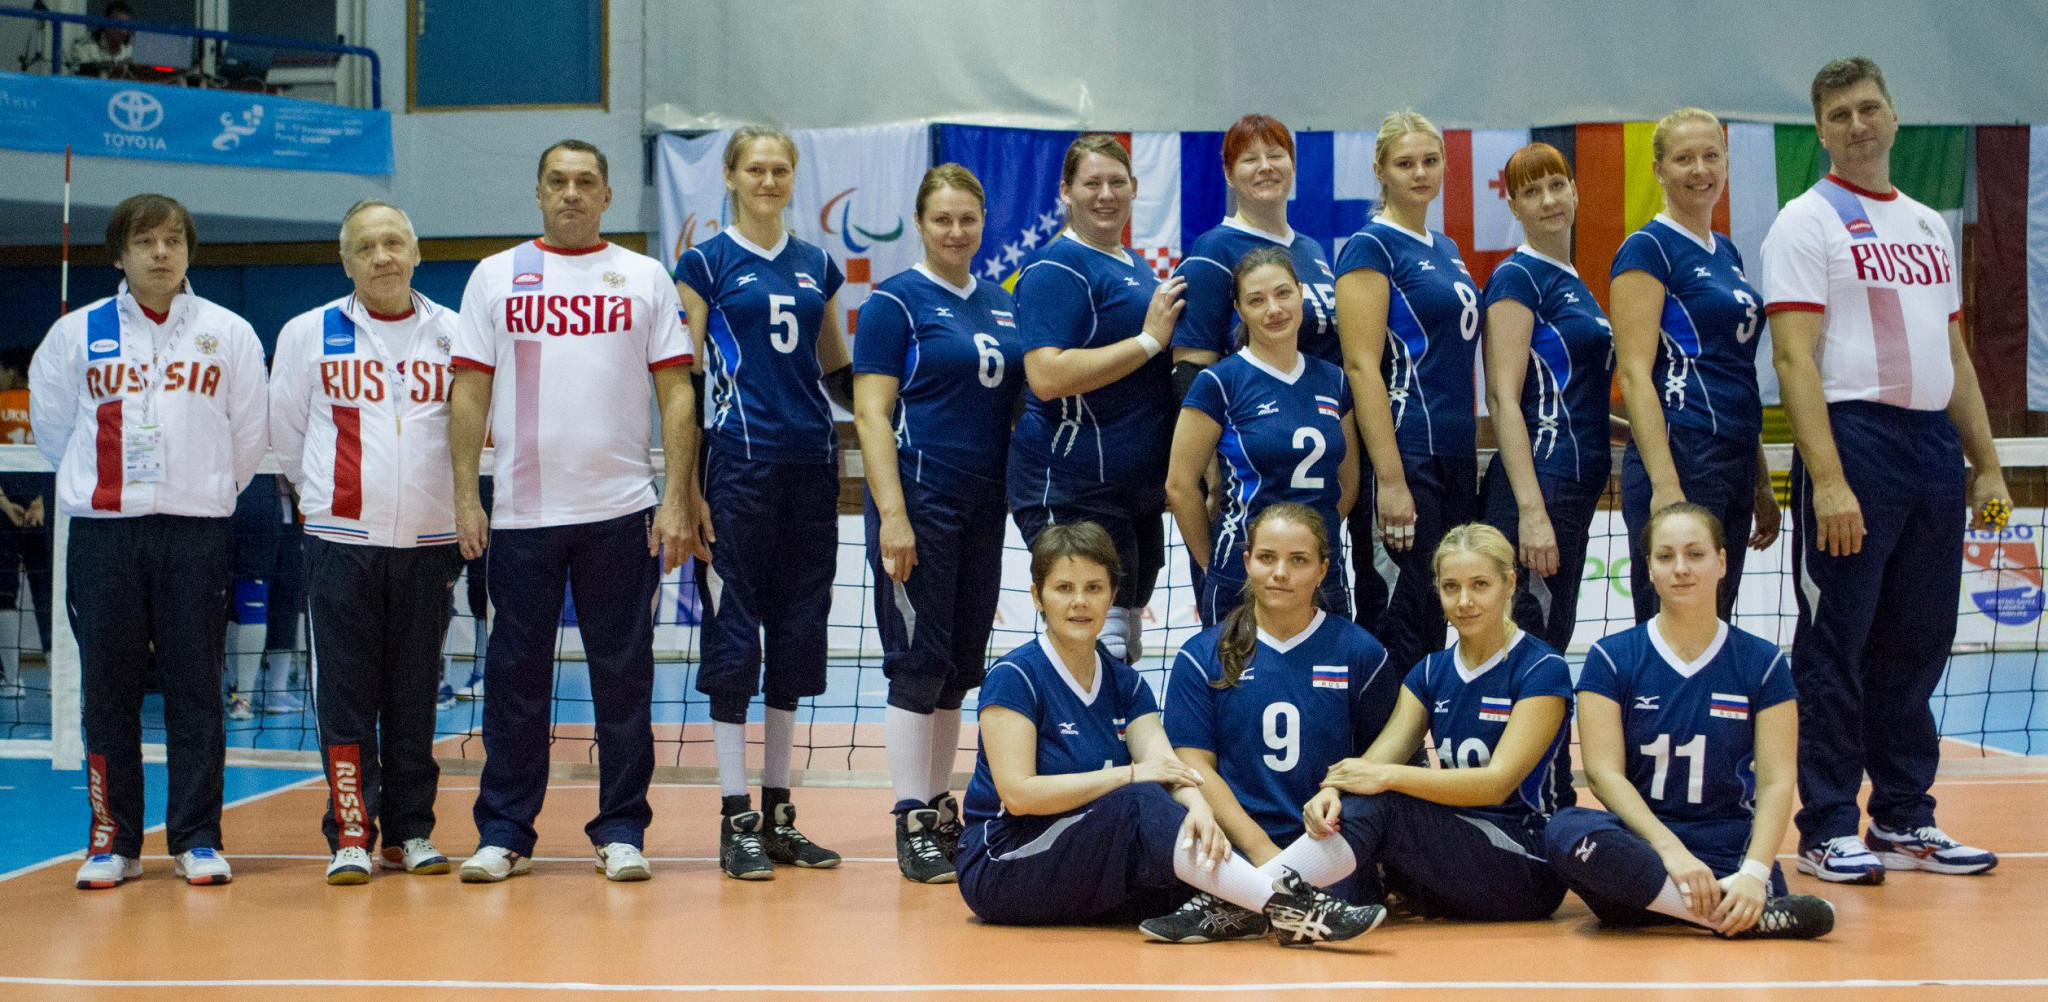 Russia clinch top spot in group at European Sitting Volleyball Championships